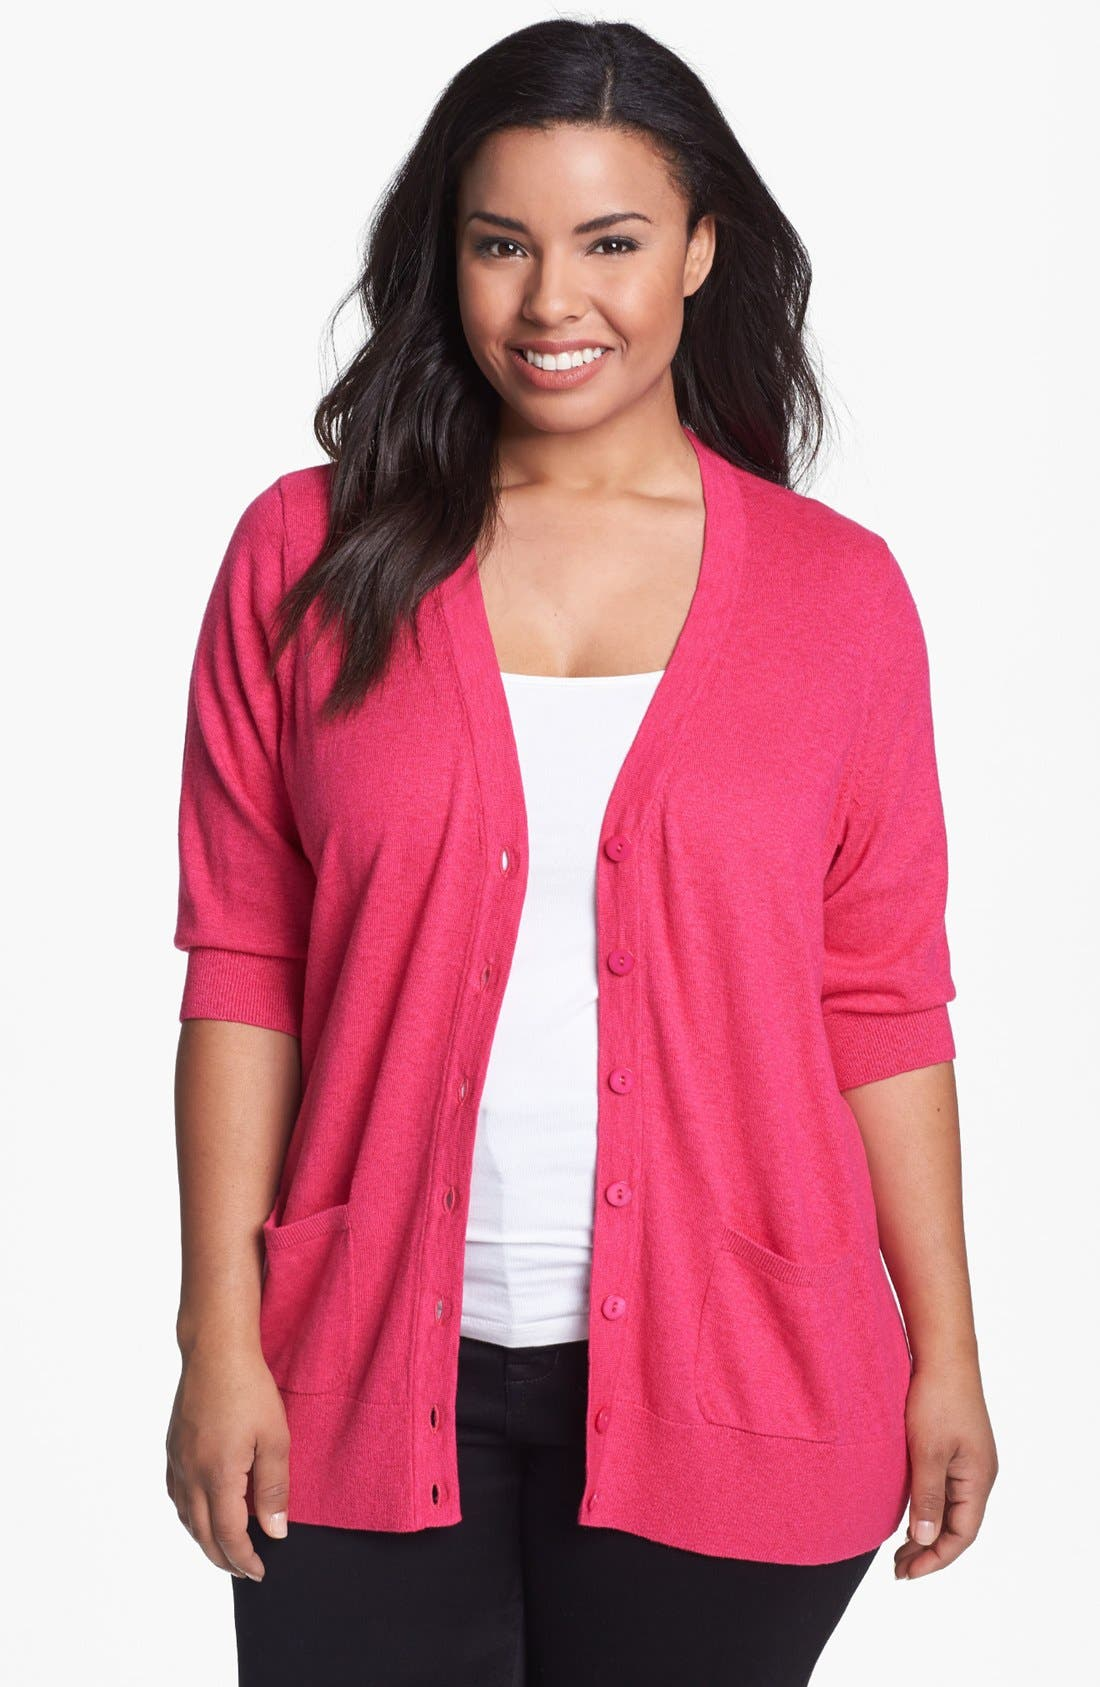 Alternate Image 1 Selected - Sejour 'Girlfriend' Elbow Sleeve Cardigan (Plus Size)